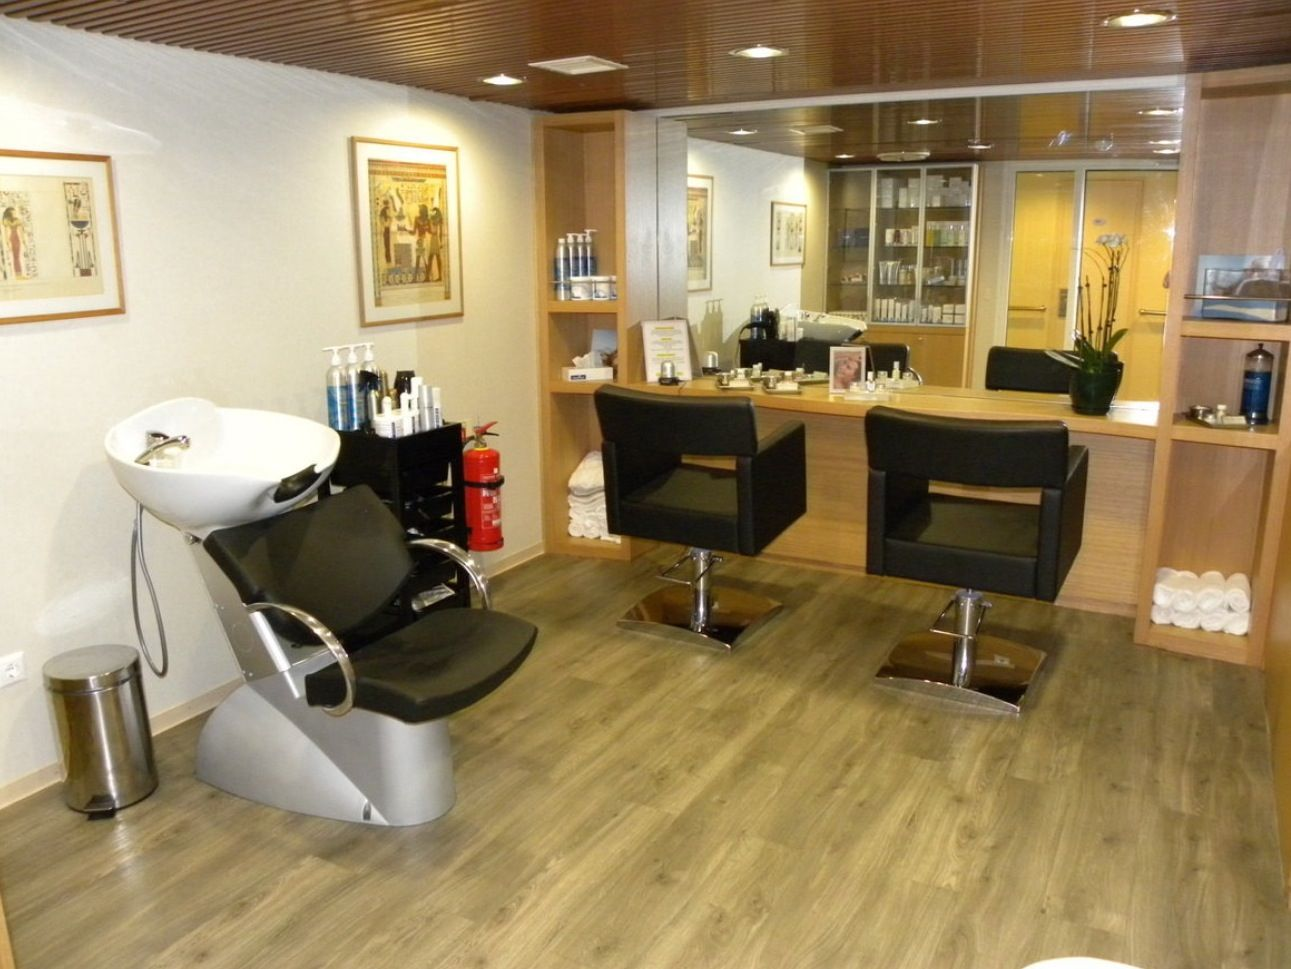 Small salon perfect want want want just for me for Salone design